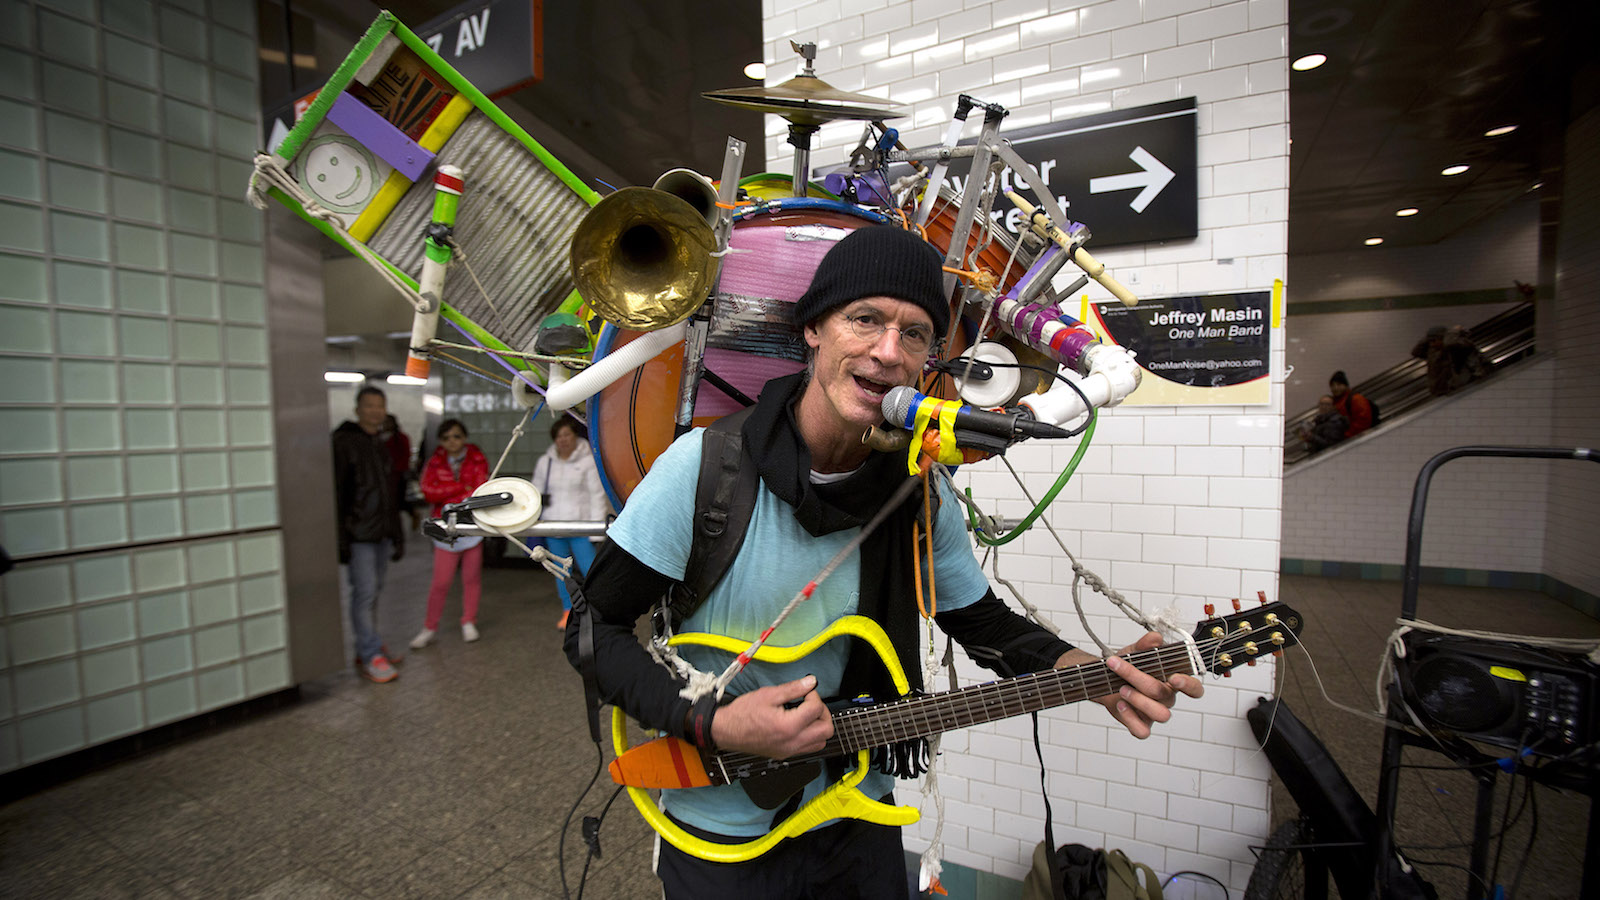 One-man band musician Jeffrey Masin performs at the Times Square subway station for tips in New York, December 27, 2013.      REUTERS/Carlo Allegri (UNITED STATES - Tags: SOCIETY) - RTX16VFQ